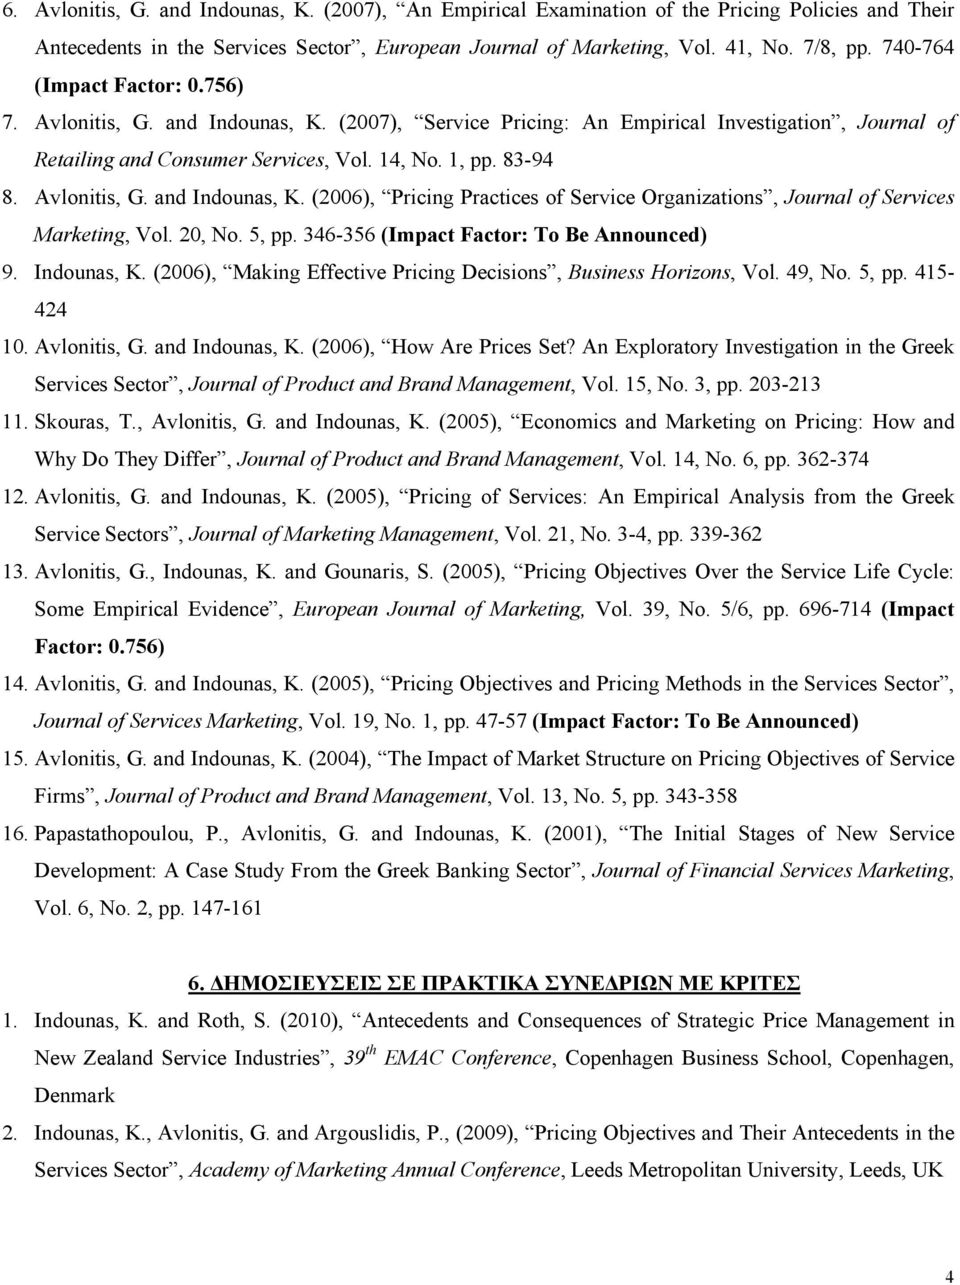 Avlonitis, G. and Indounas, K. (2006), Pricing Practices of Service Organizations, Journal of Services Marketing, Vol. 20, No. 5, pp. 346-356 (Impact Factor: To Be Announced) 9. Indounas, K. (2006), Making Effective Pricing Decisions, Business Horizons, Vol.